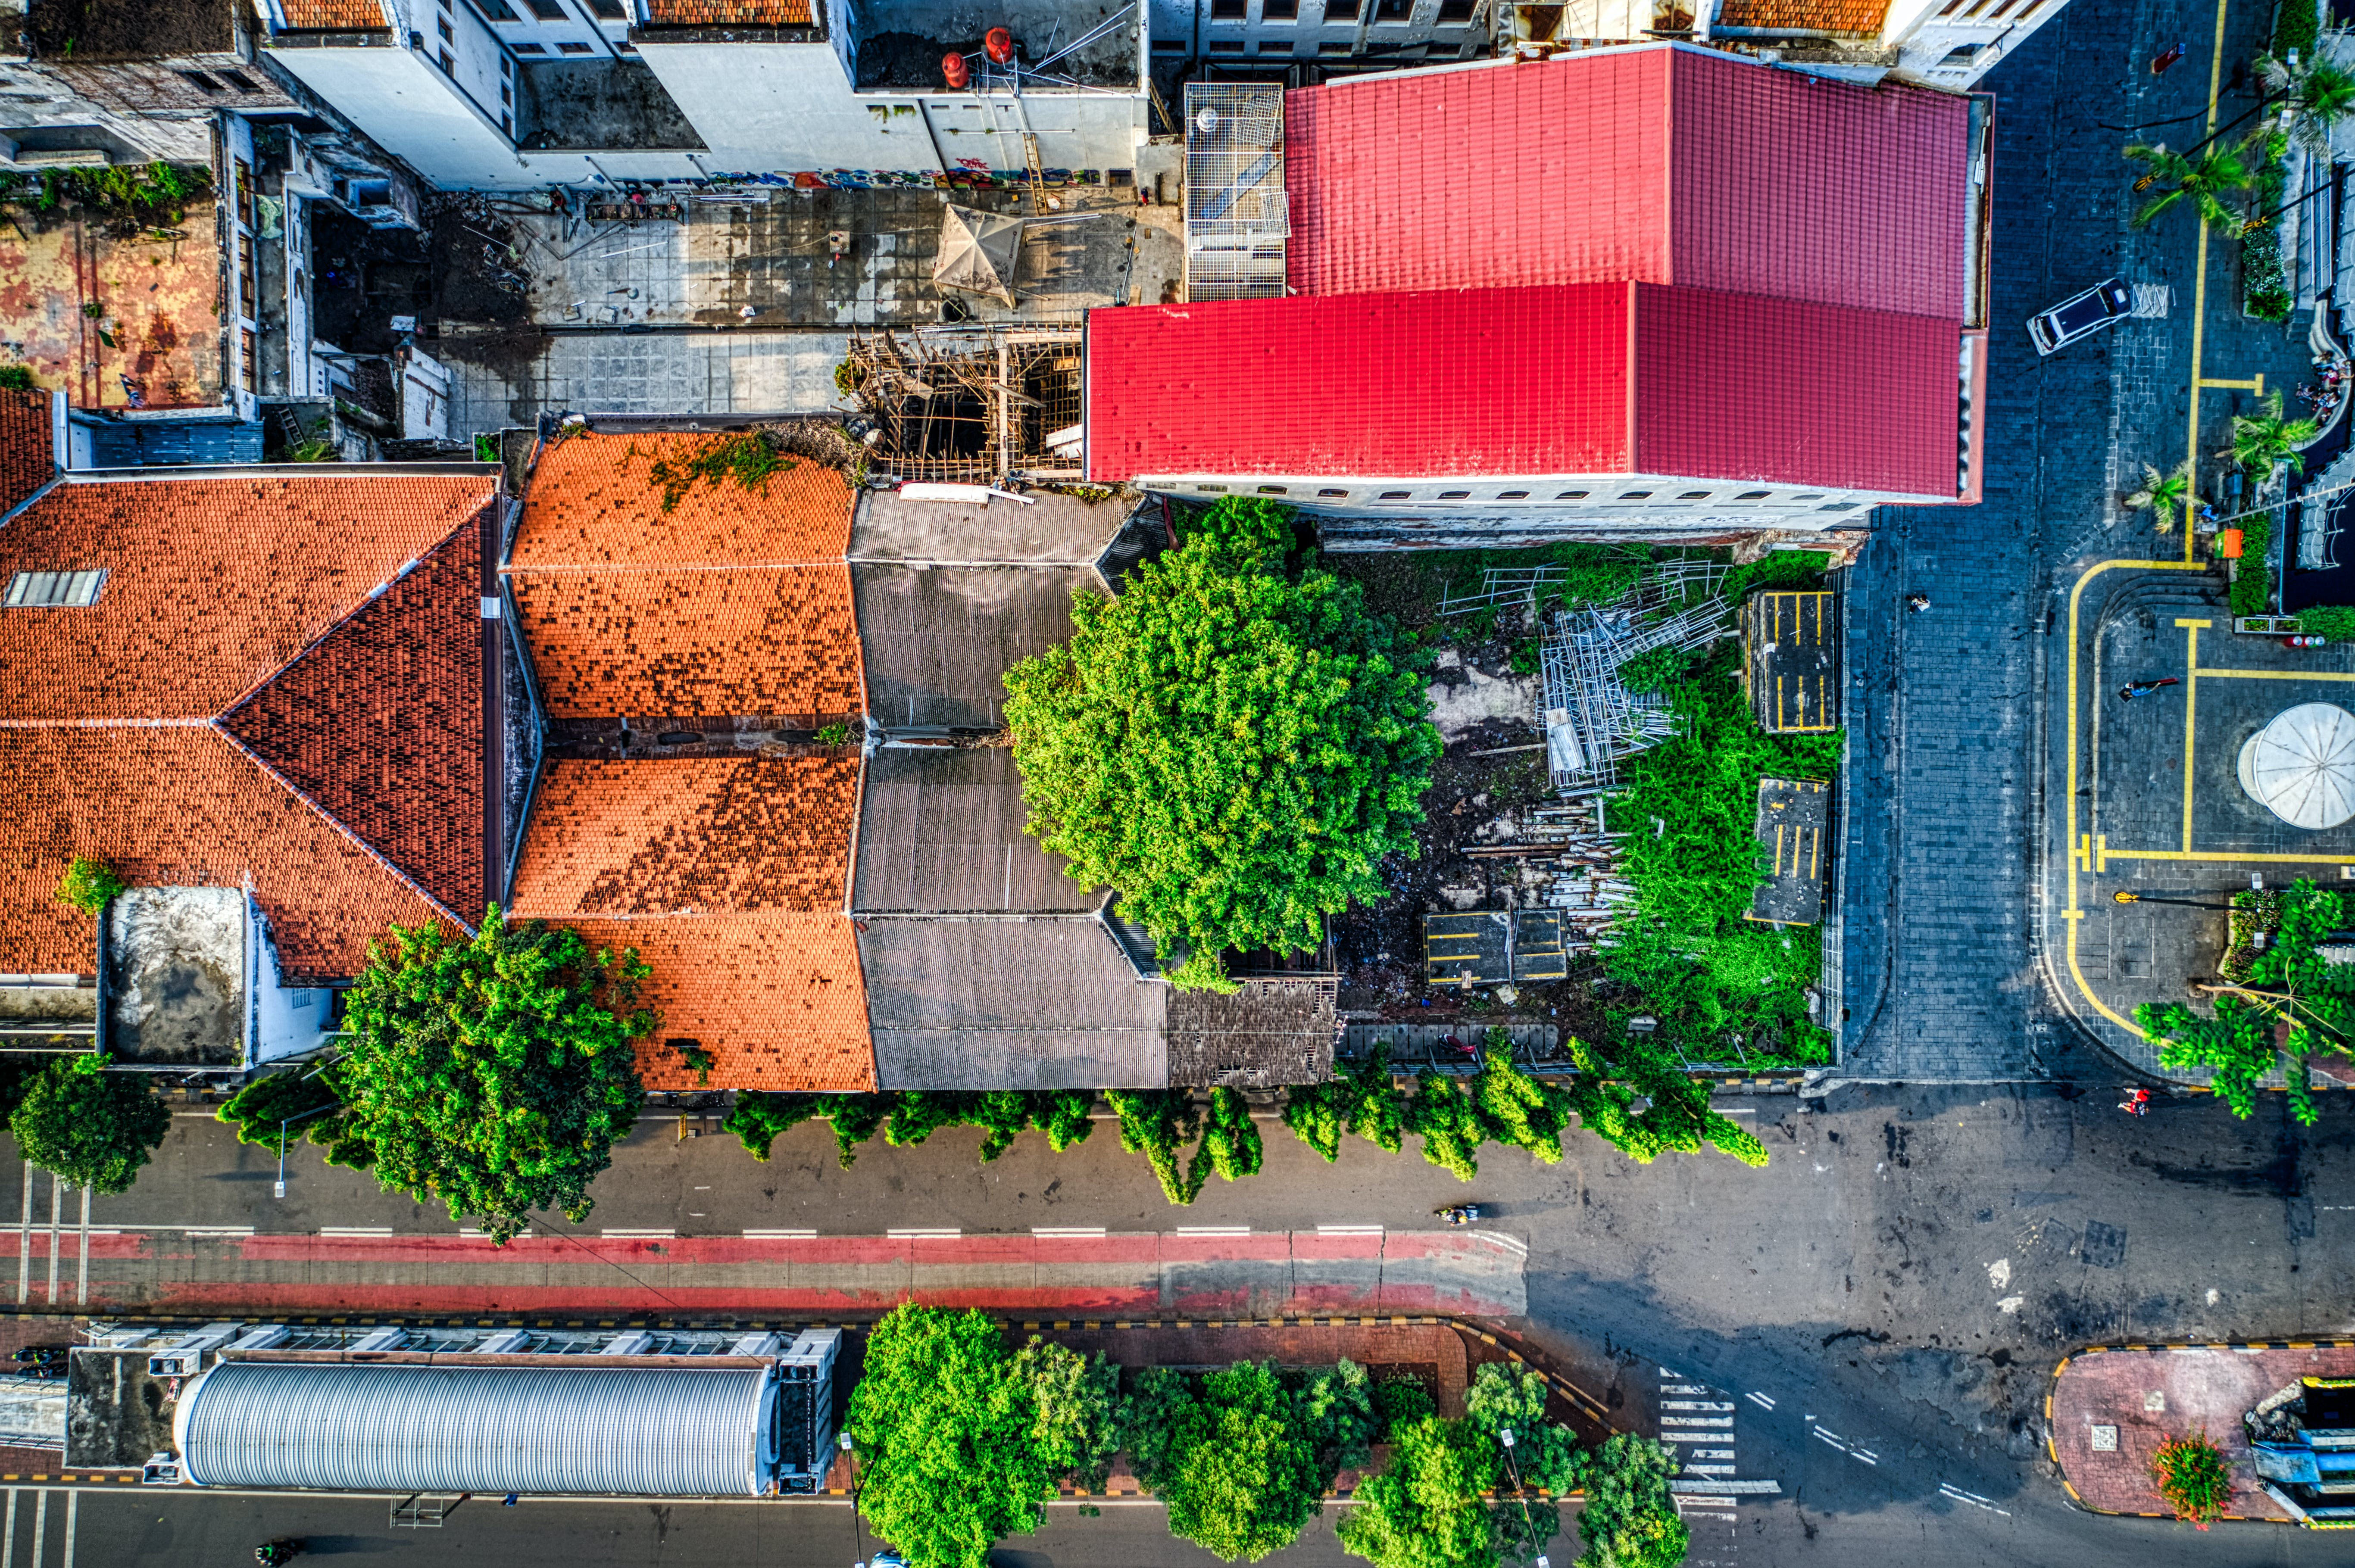 Aerial Photography of Houses and Concrete Road